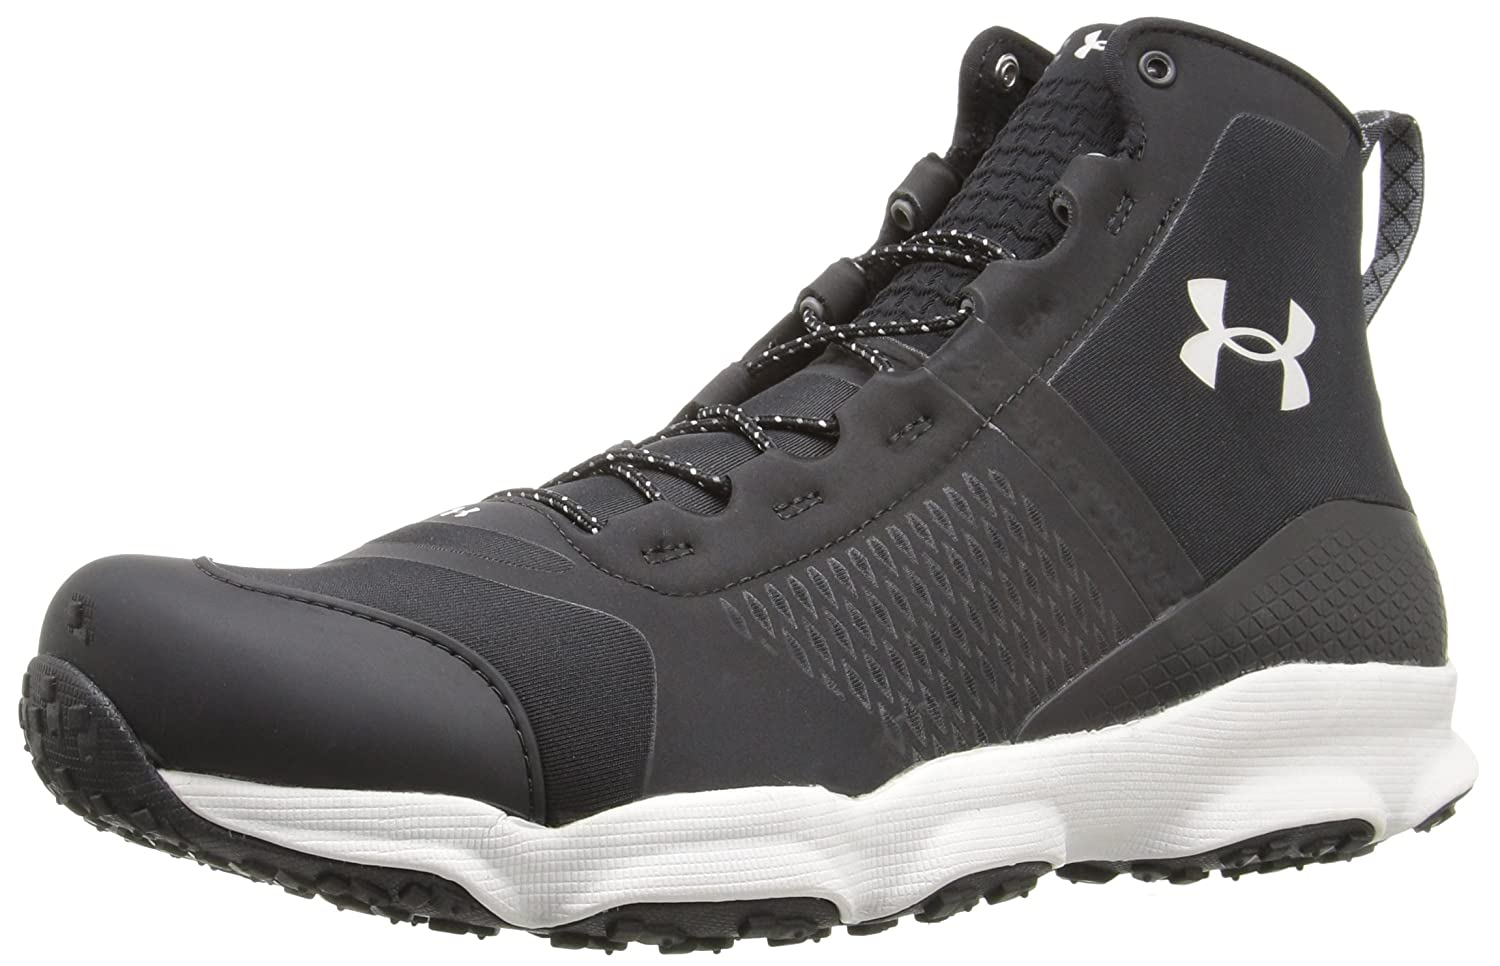 Under Armour Men's Speedfit Hike Mid Boot 1257447